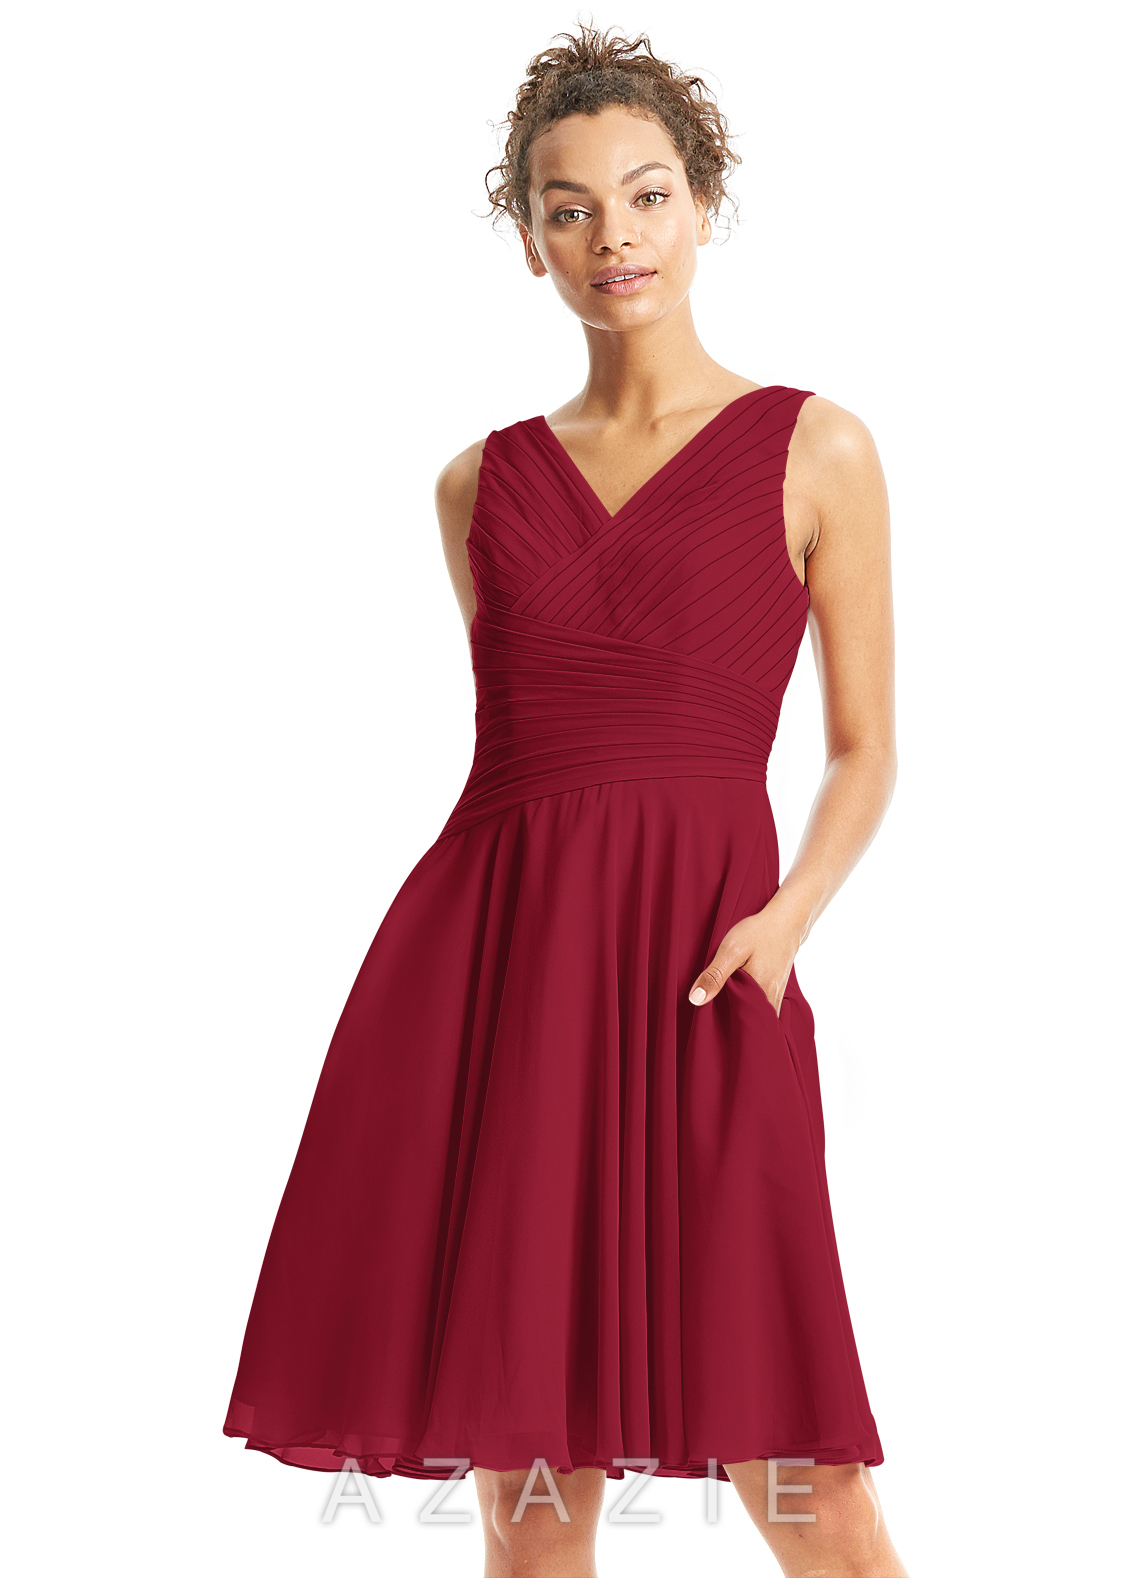 f42aad33941 Azazie Jenna Bridesmaid Dress